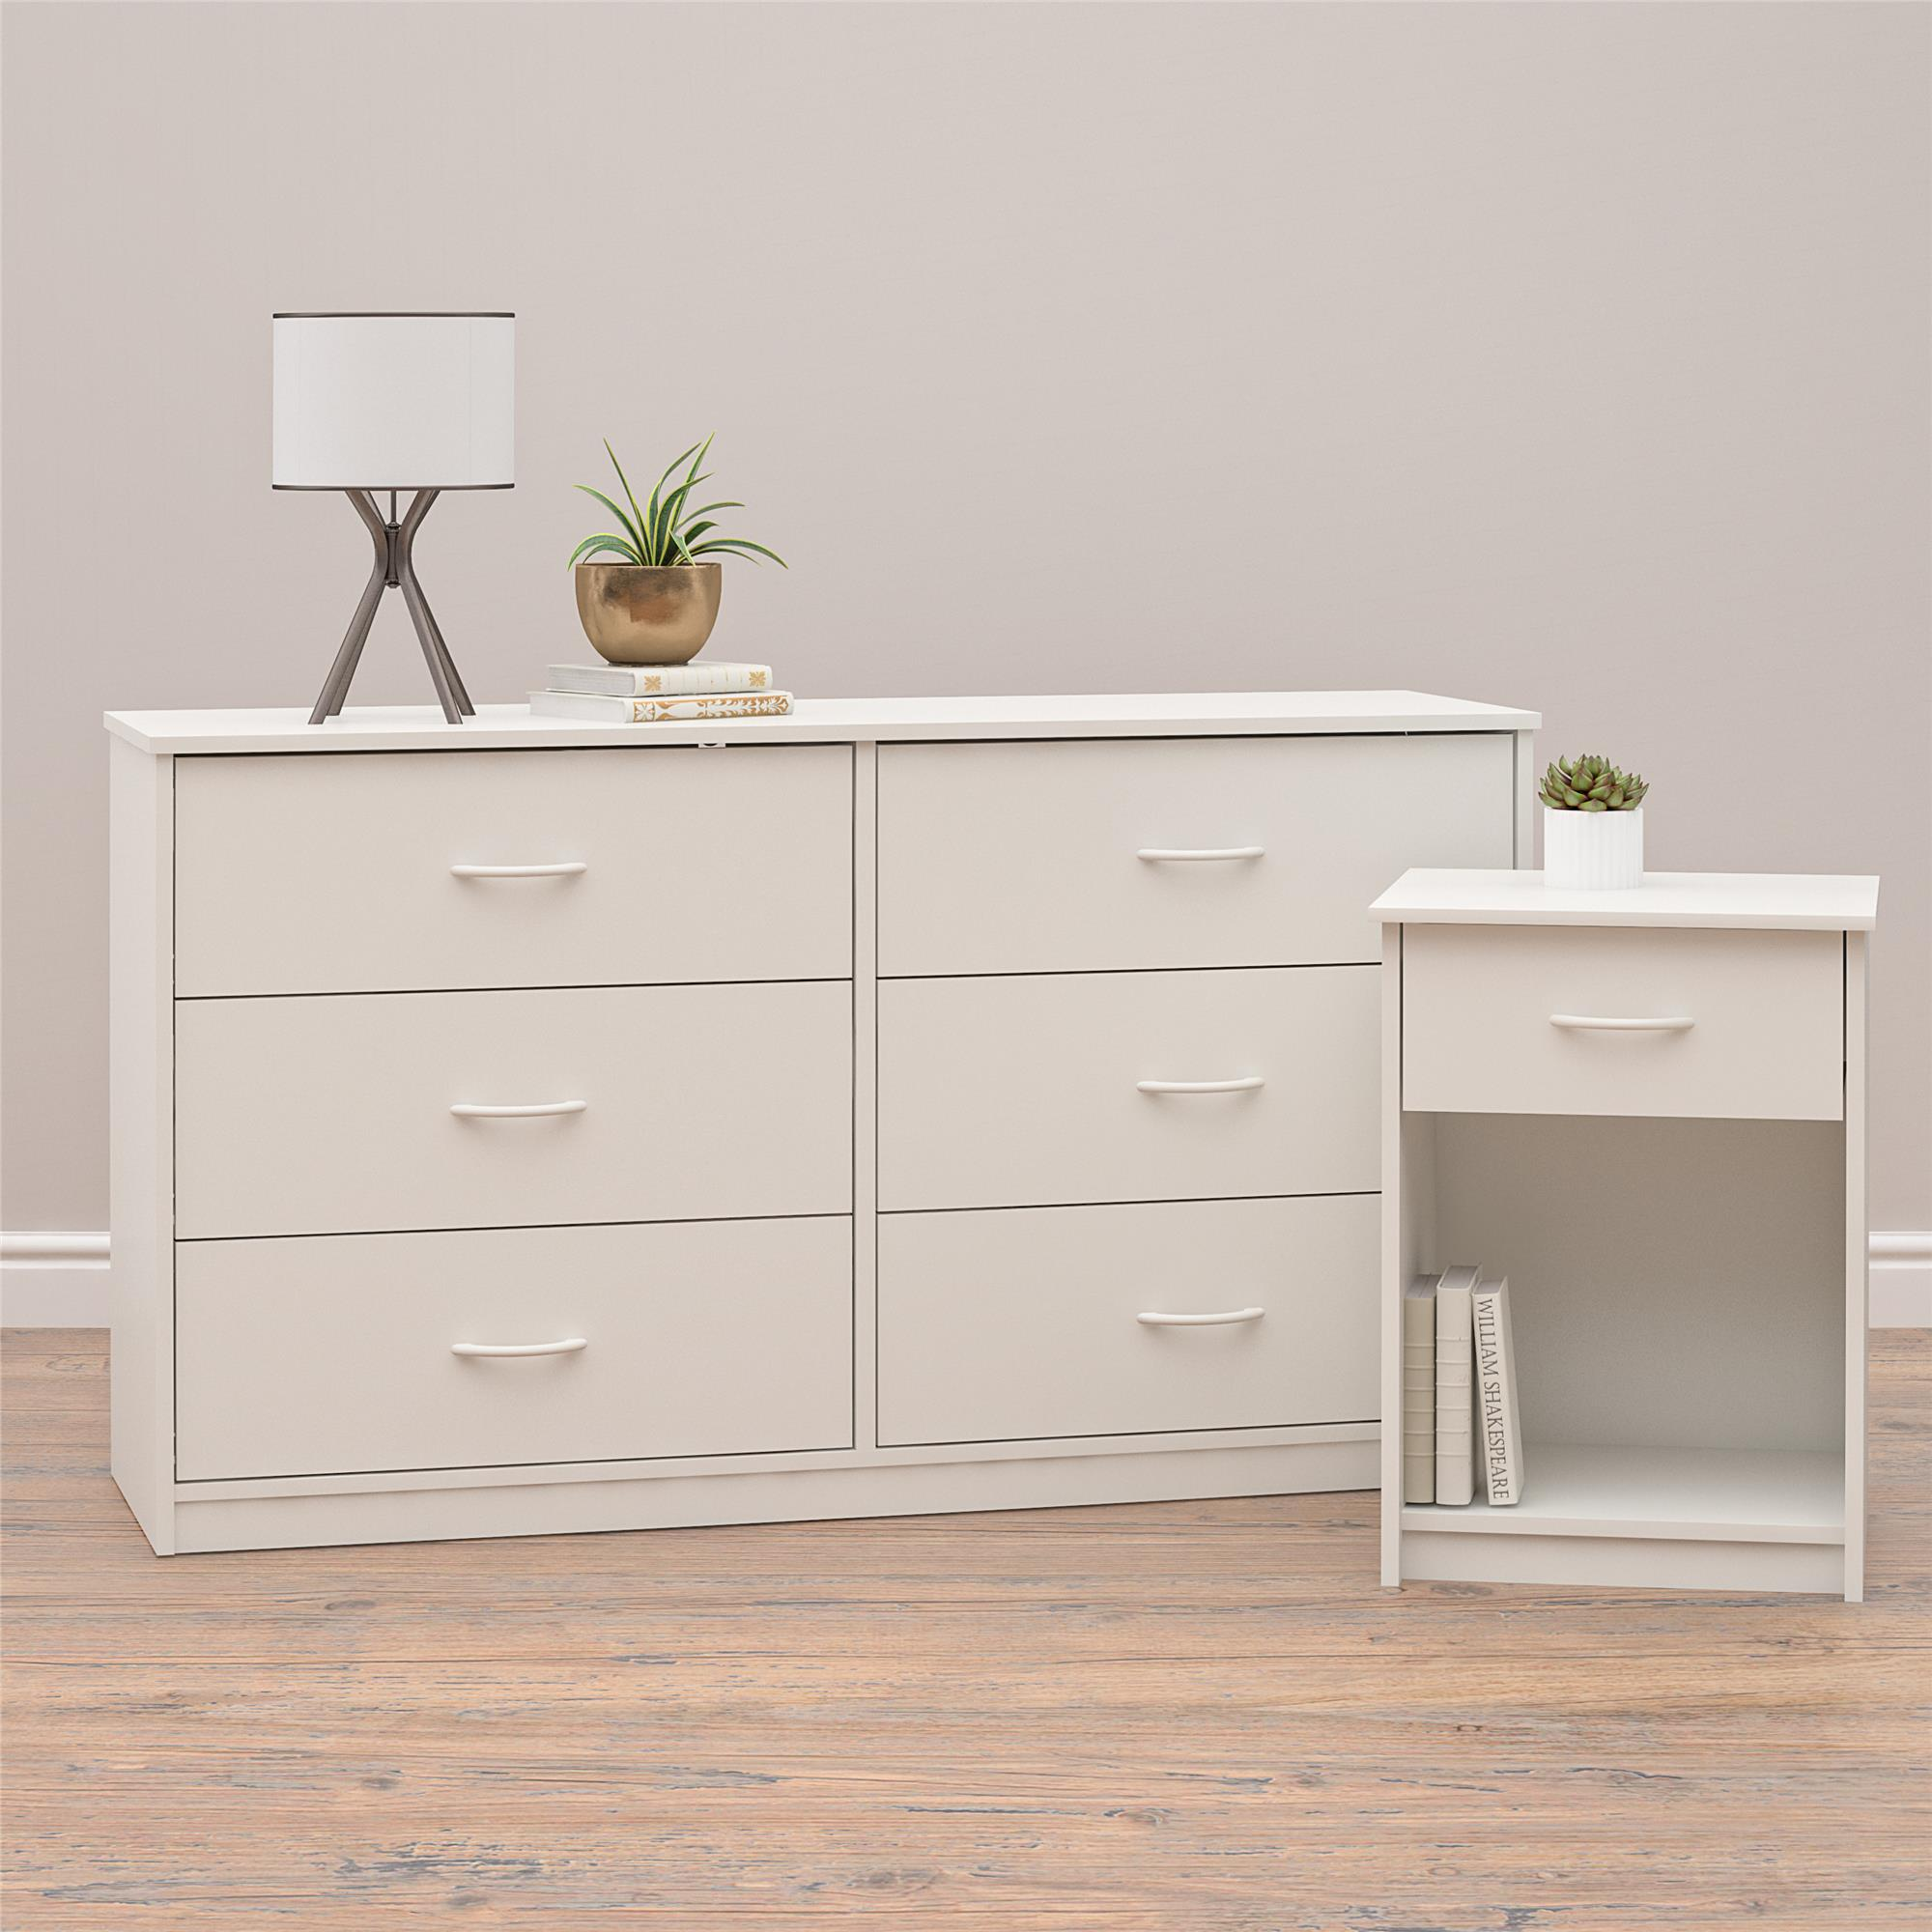 Mainstay Classic 6 Drawer Dresser White Finish .A White